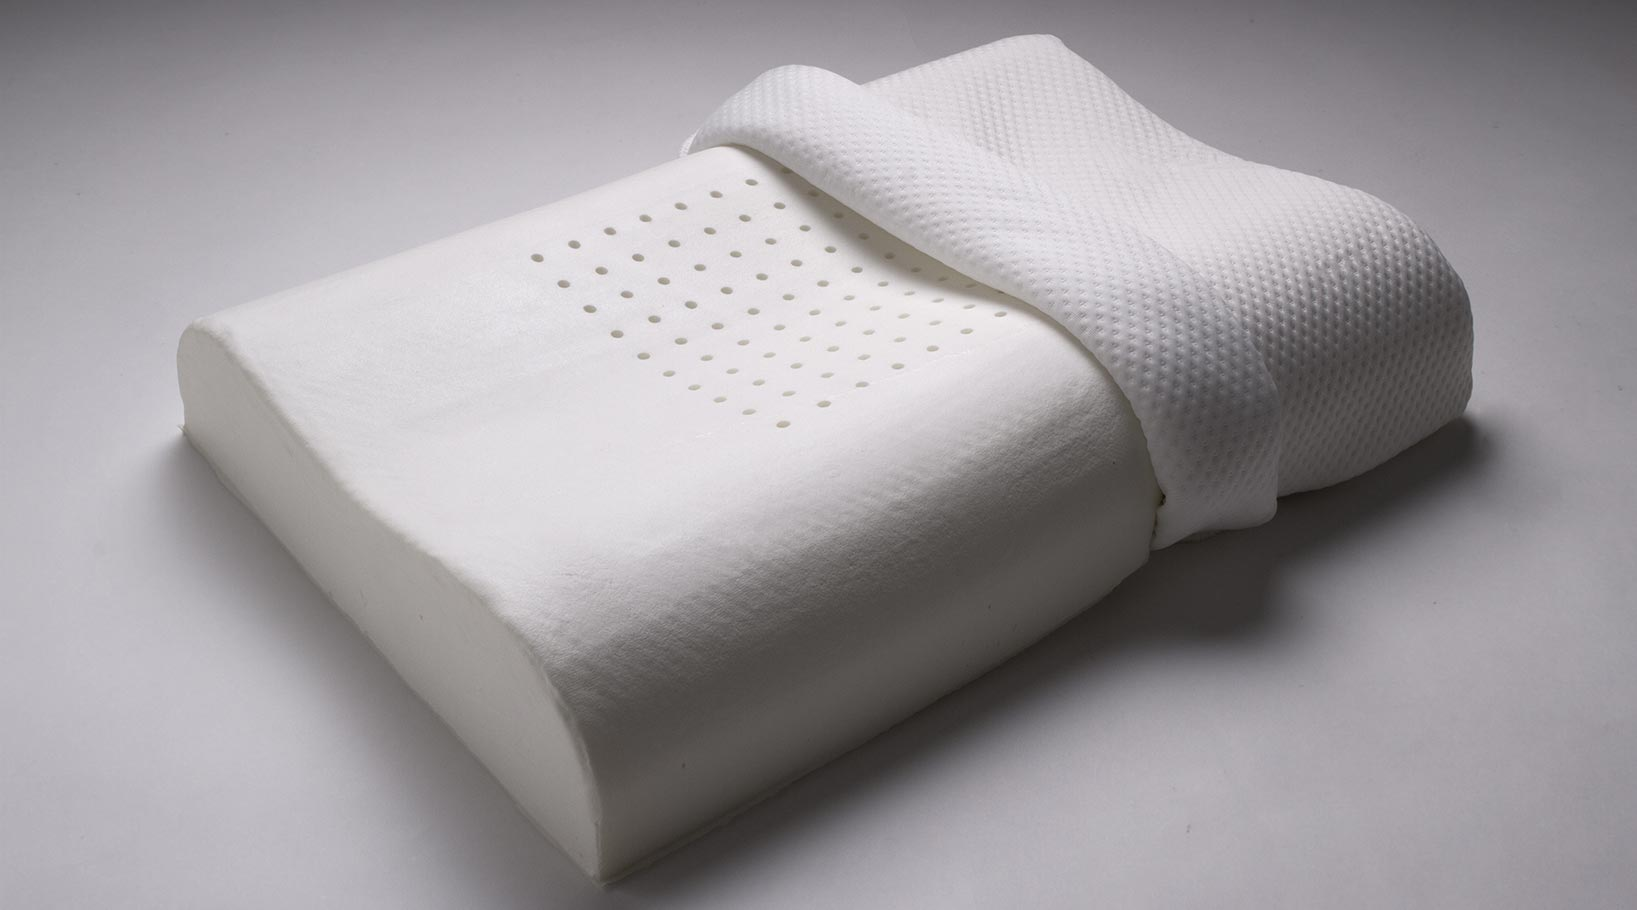 Tempur Pedic Tempur Adapt Pro Cooling Pillow Review